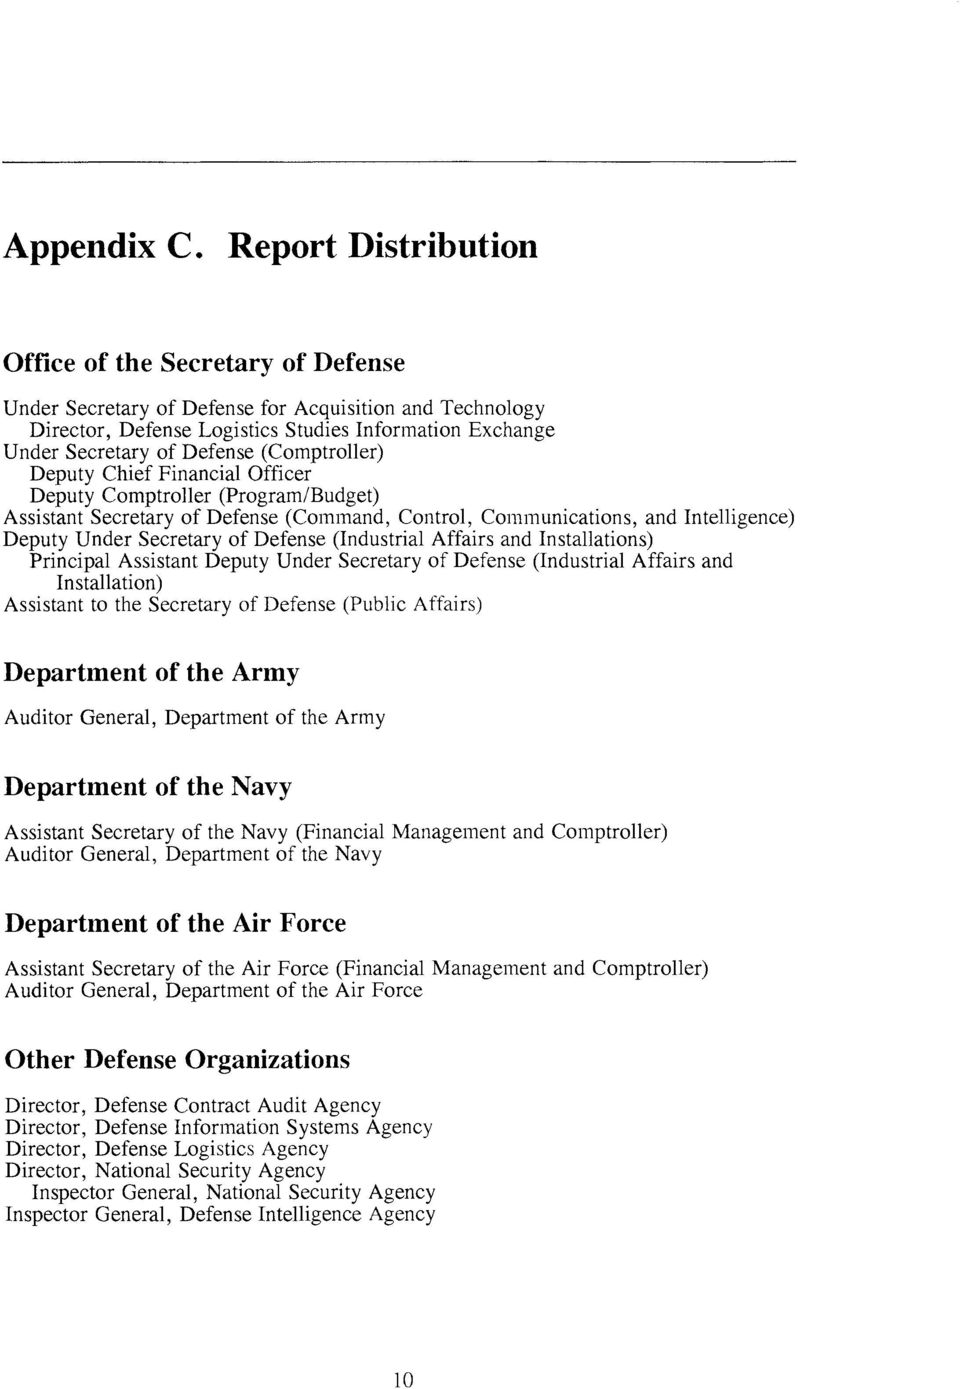 (Comptroller) Deputy Chief Financial Officer Deputy Comptroller (Program/Budget) Assistant Secretary of Defense (Command, Control, Communications, and Intelligence) Deputy Under Secretary of Defense